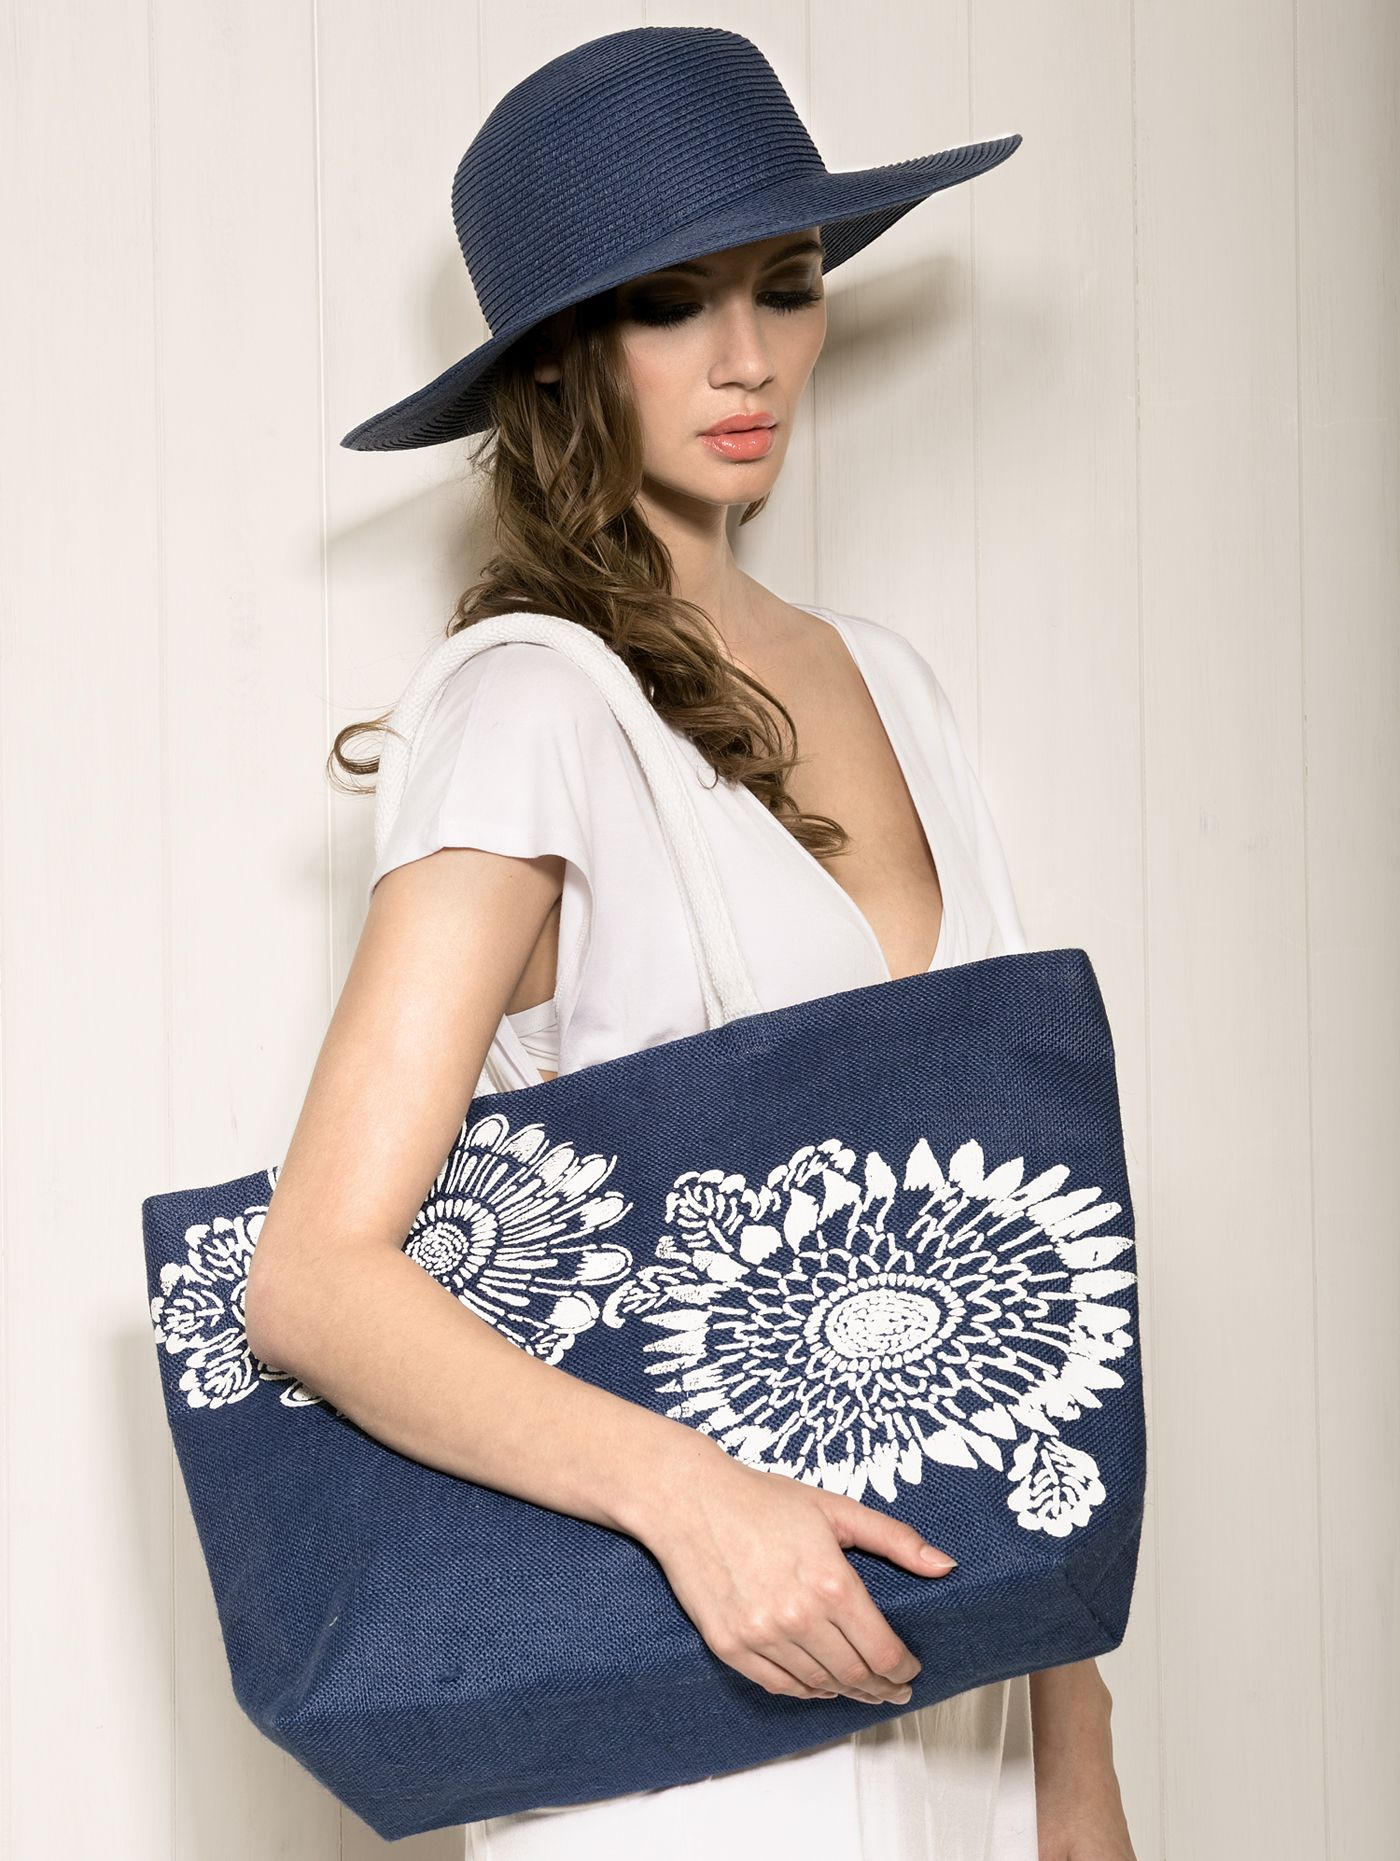 Manila Hat & Bali Bag. Available to order online for immediate delivery from our trade website www.piarossini.com #trade #wholesale #SS14 #PiaRossini #Resortwear #Resort #Beachwear #CoverUps #fashion #style #trend